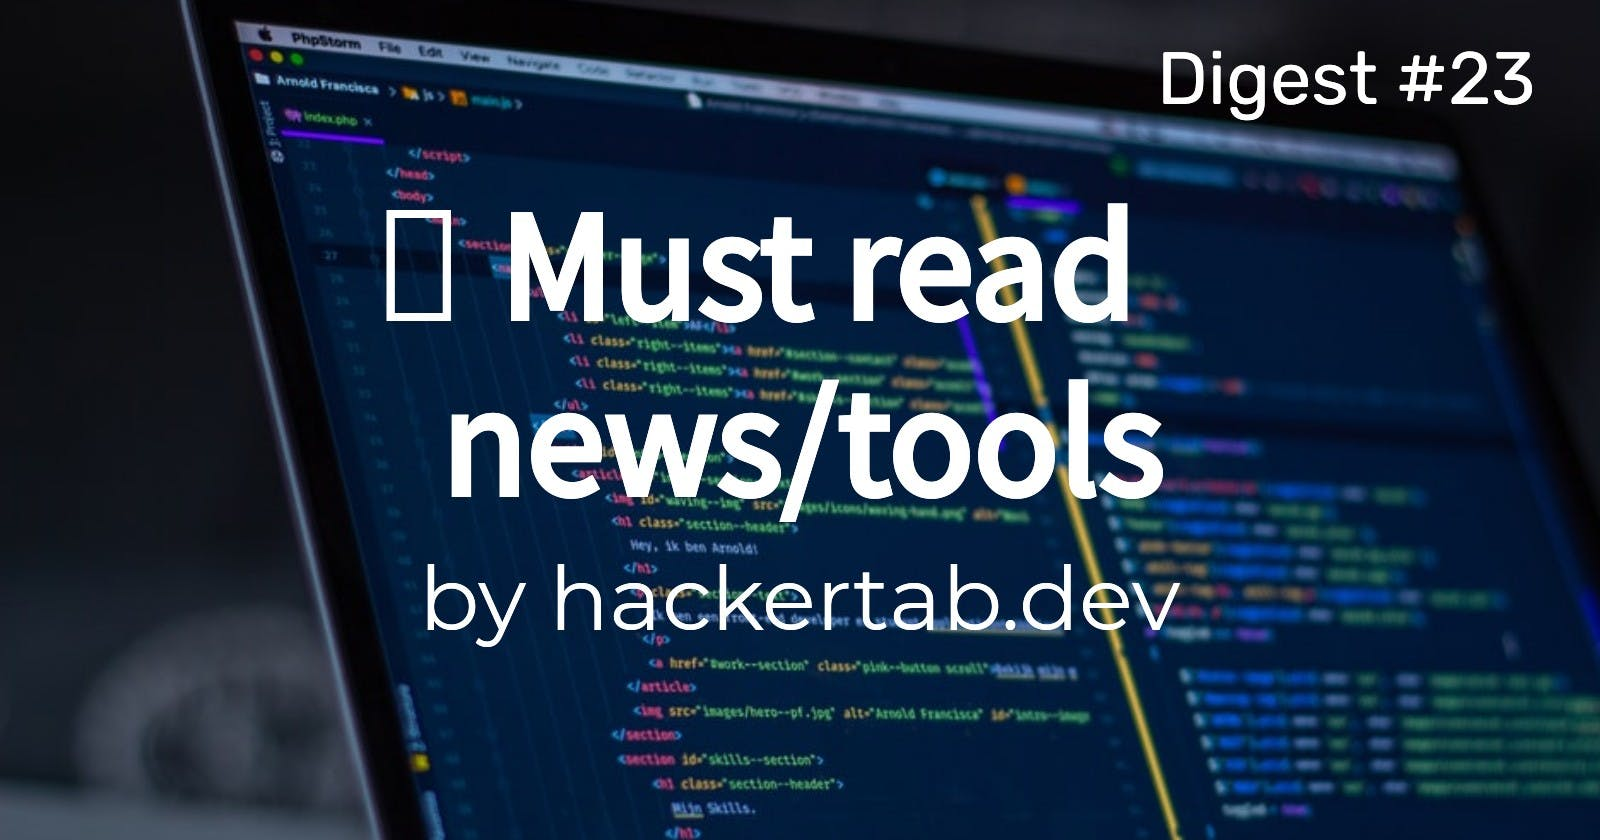 ⚡ Must read Tech news/tools of the day - Digest #23